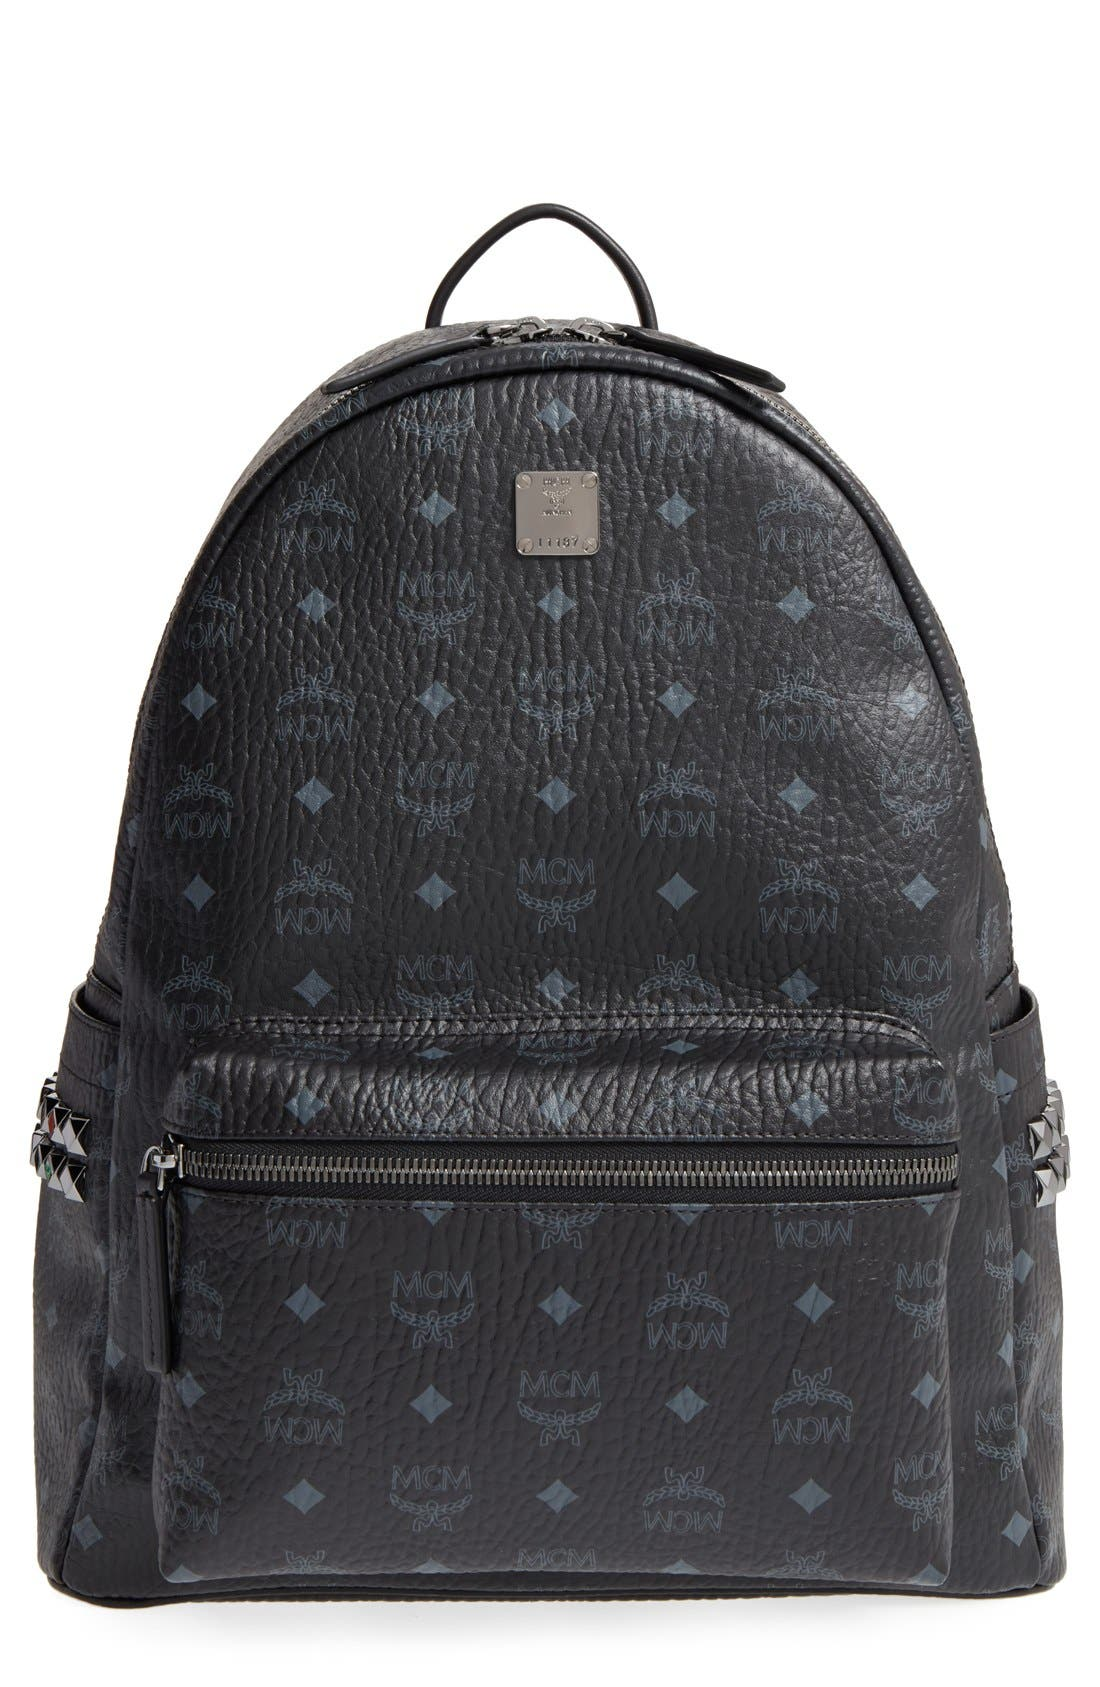 MCM Medium Stark Coated Canvas Backpack